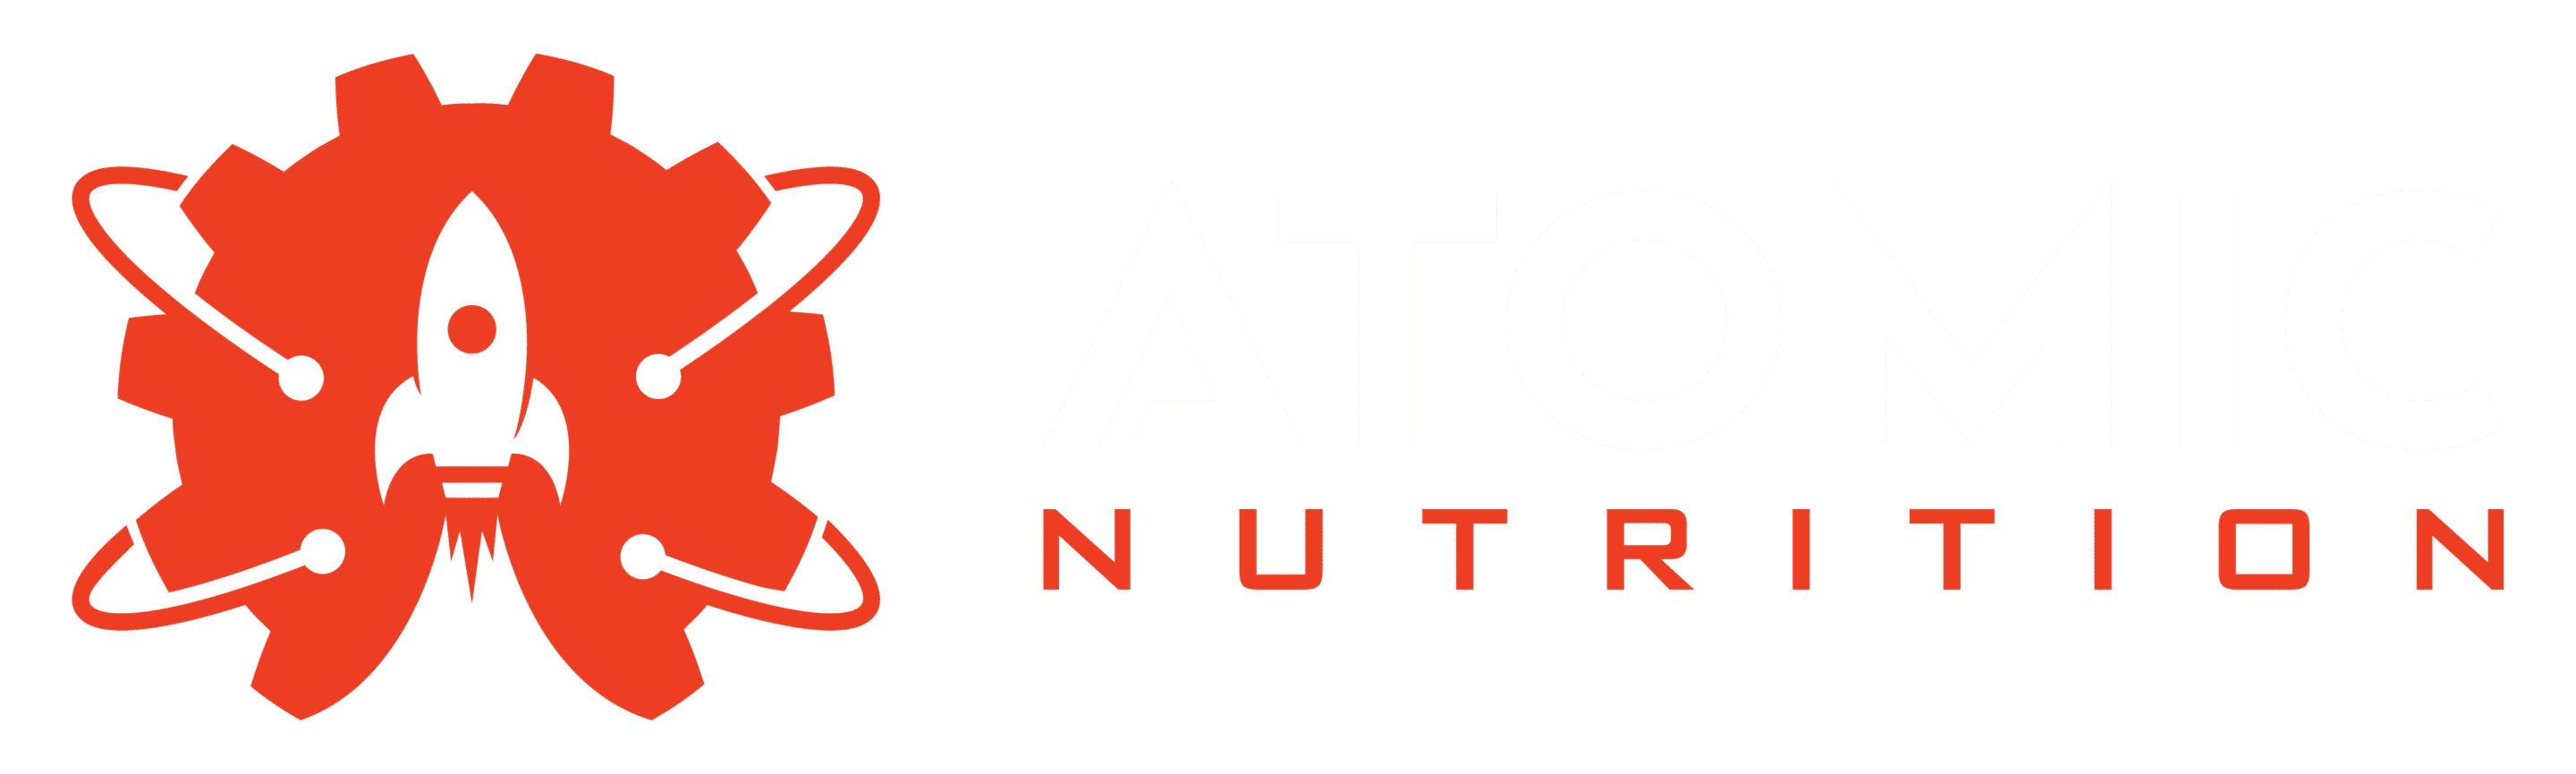 Atomic Nutrition